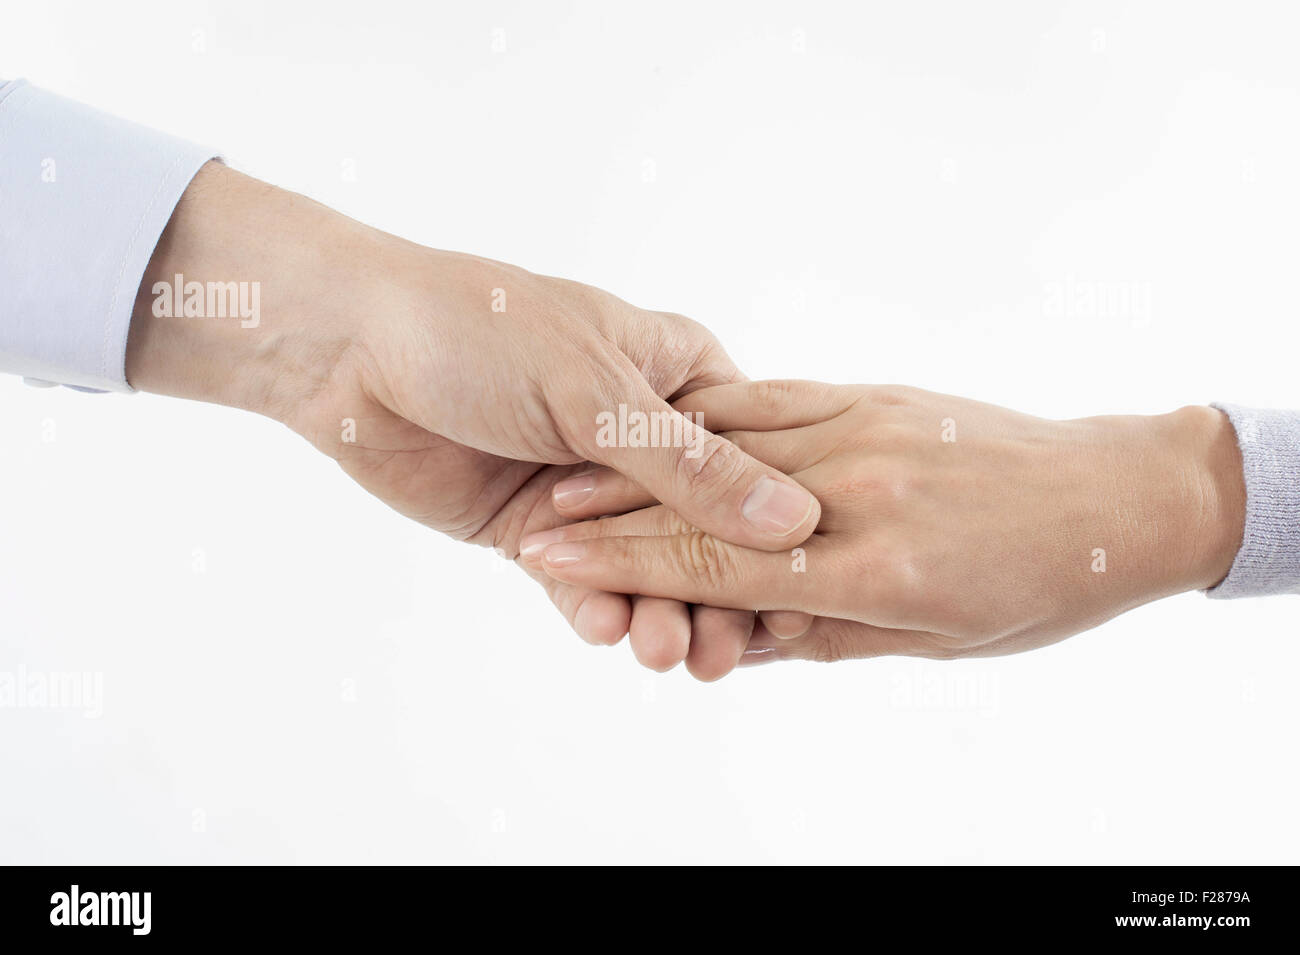 Close-up of man holding woman's hand, Bavaria, Germany - Stock Image